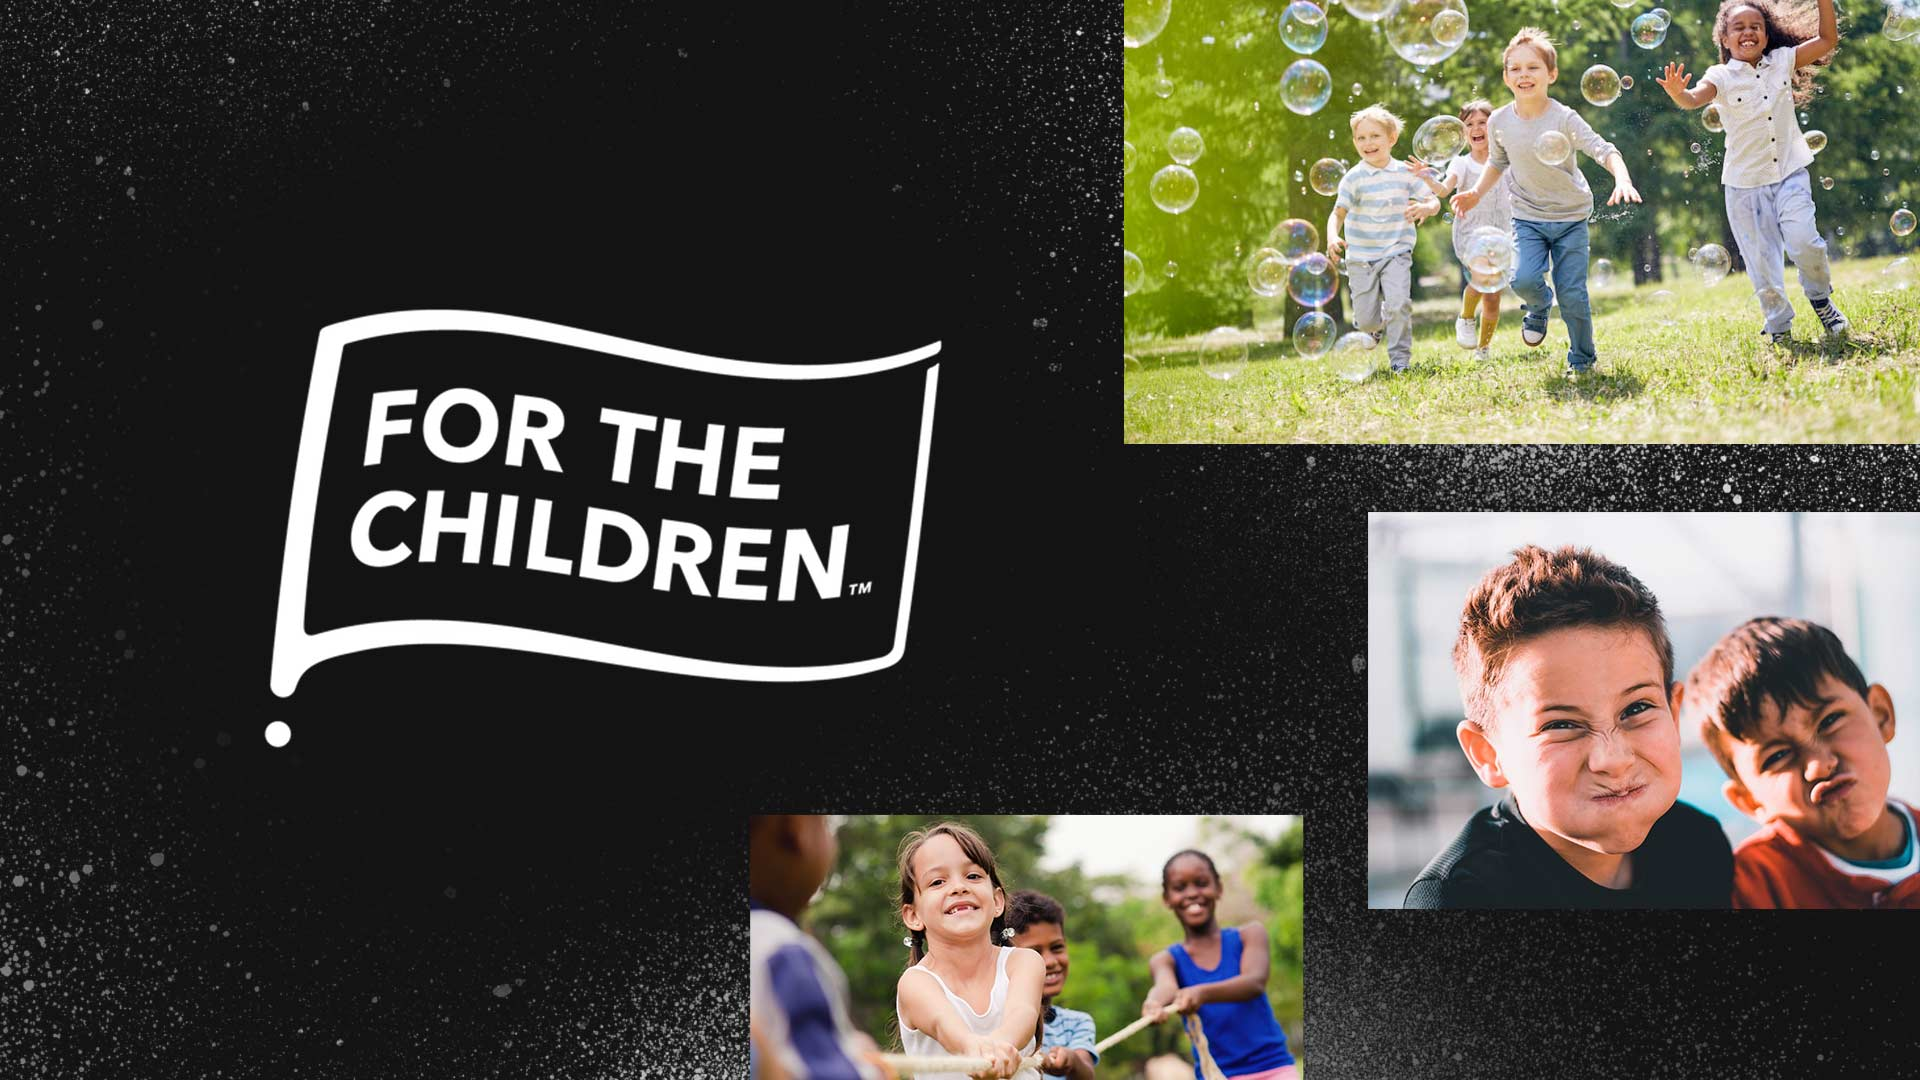 The For The Children logo next to images of joyful kids.